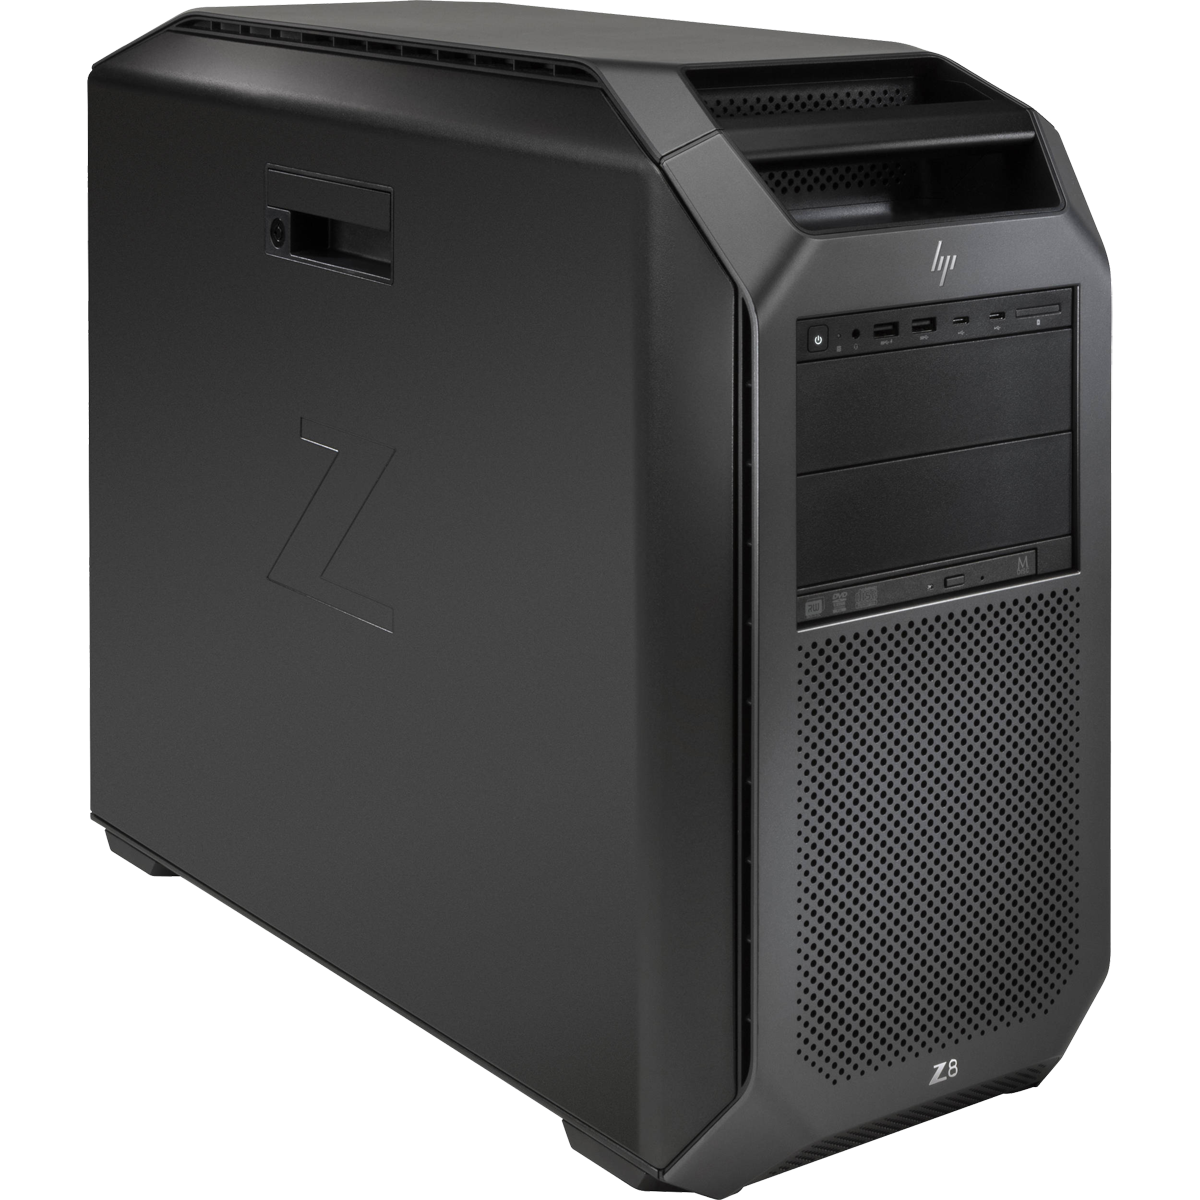 HP Z8 G4 - Viz Artist and Engine